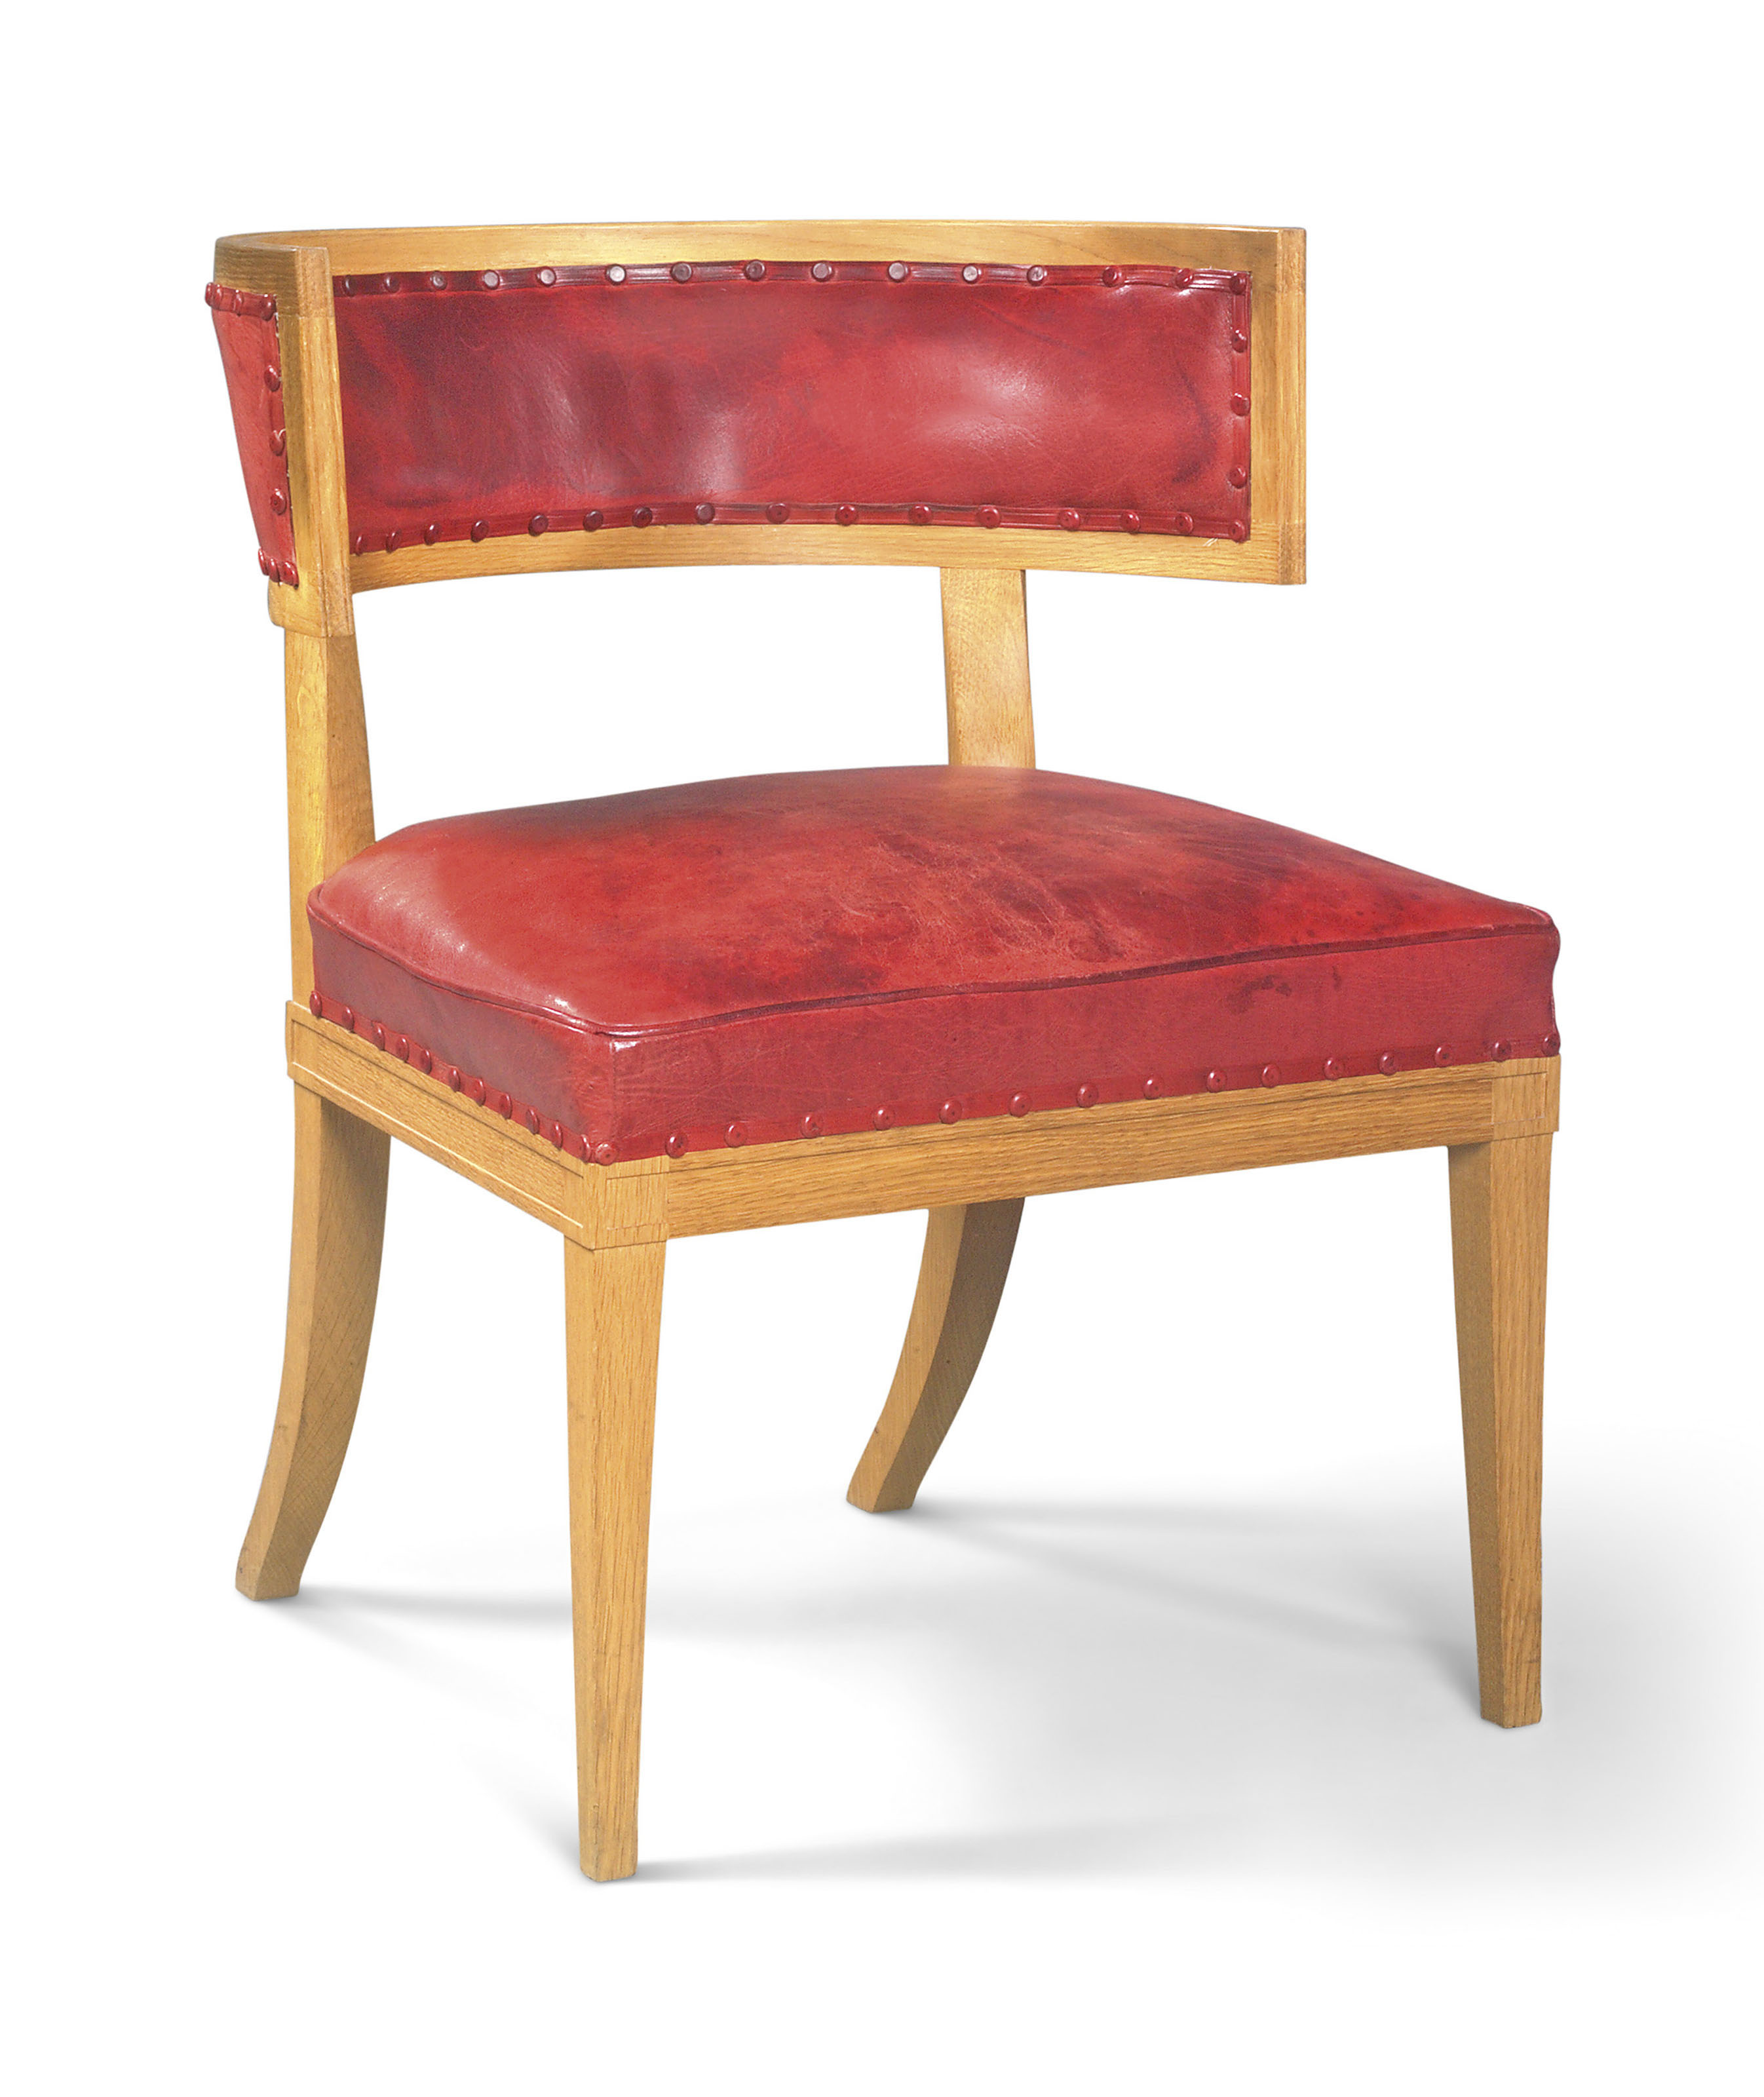 Awesome A Modern Oak Klismos Chair By Soane Britain London Unemploymentrelief Wooden Chair Designs For Living Room Unemploymentrelieforg